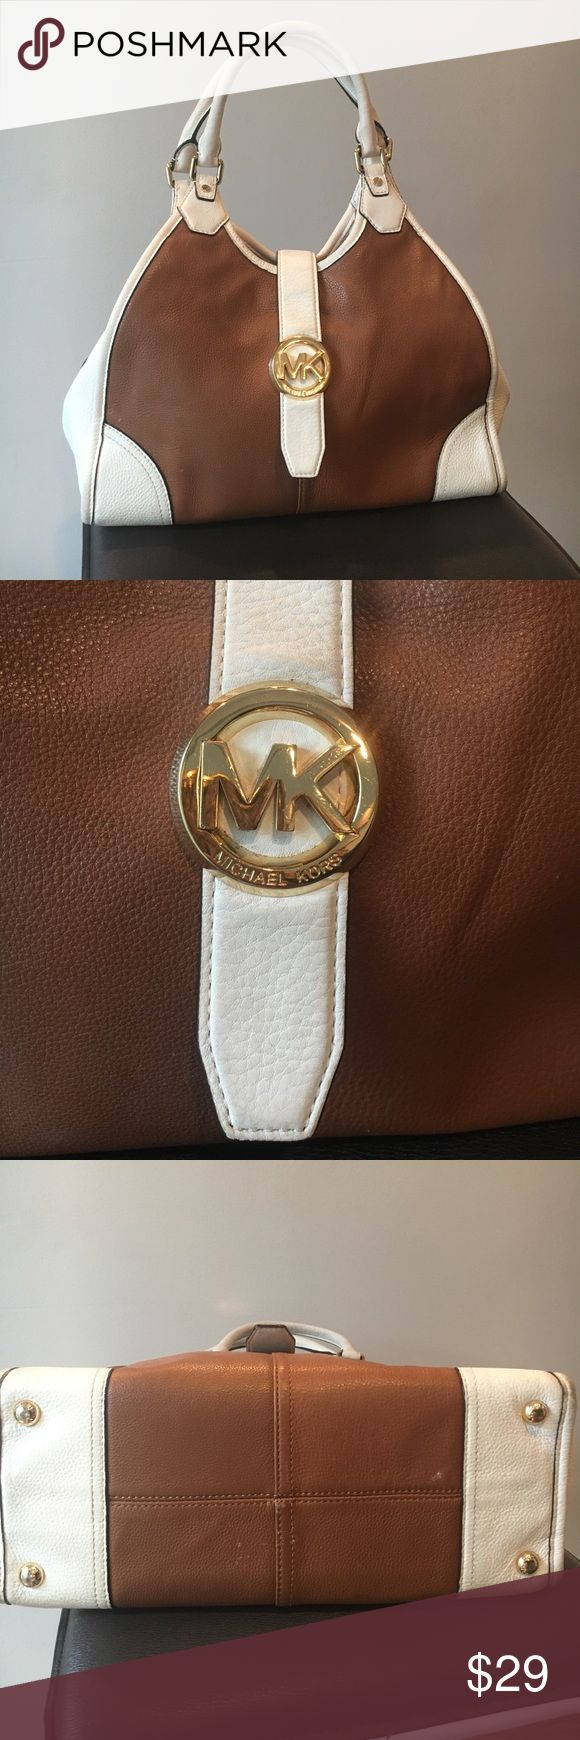 Michael Kors purse Beautiful Michael Kors purse. Stain inside and pealing strap. Great price Michael Kors Bags